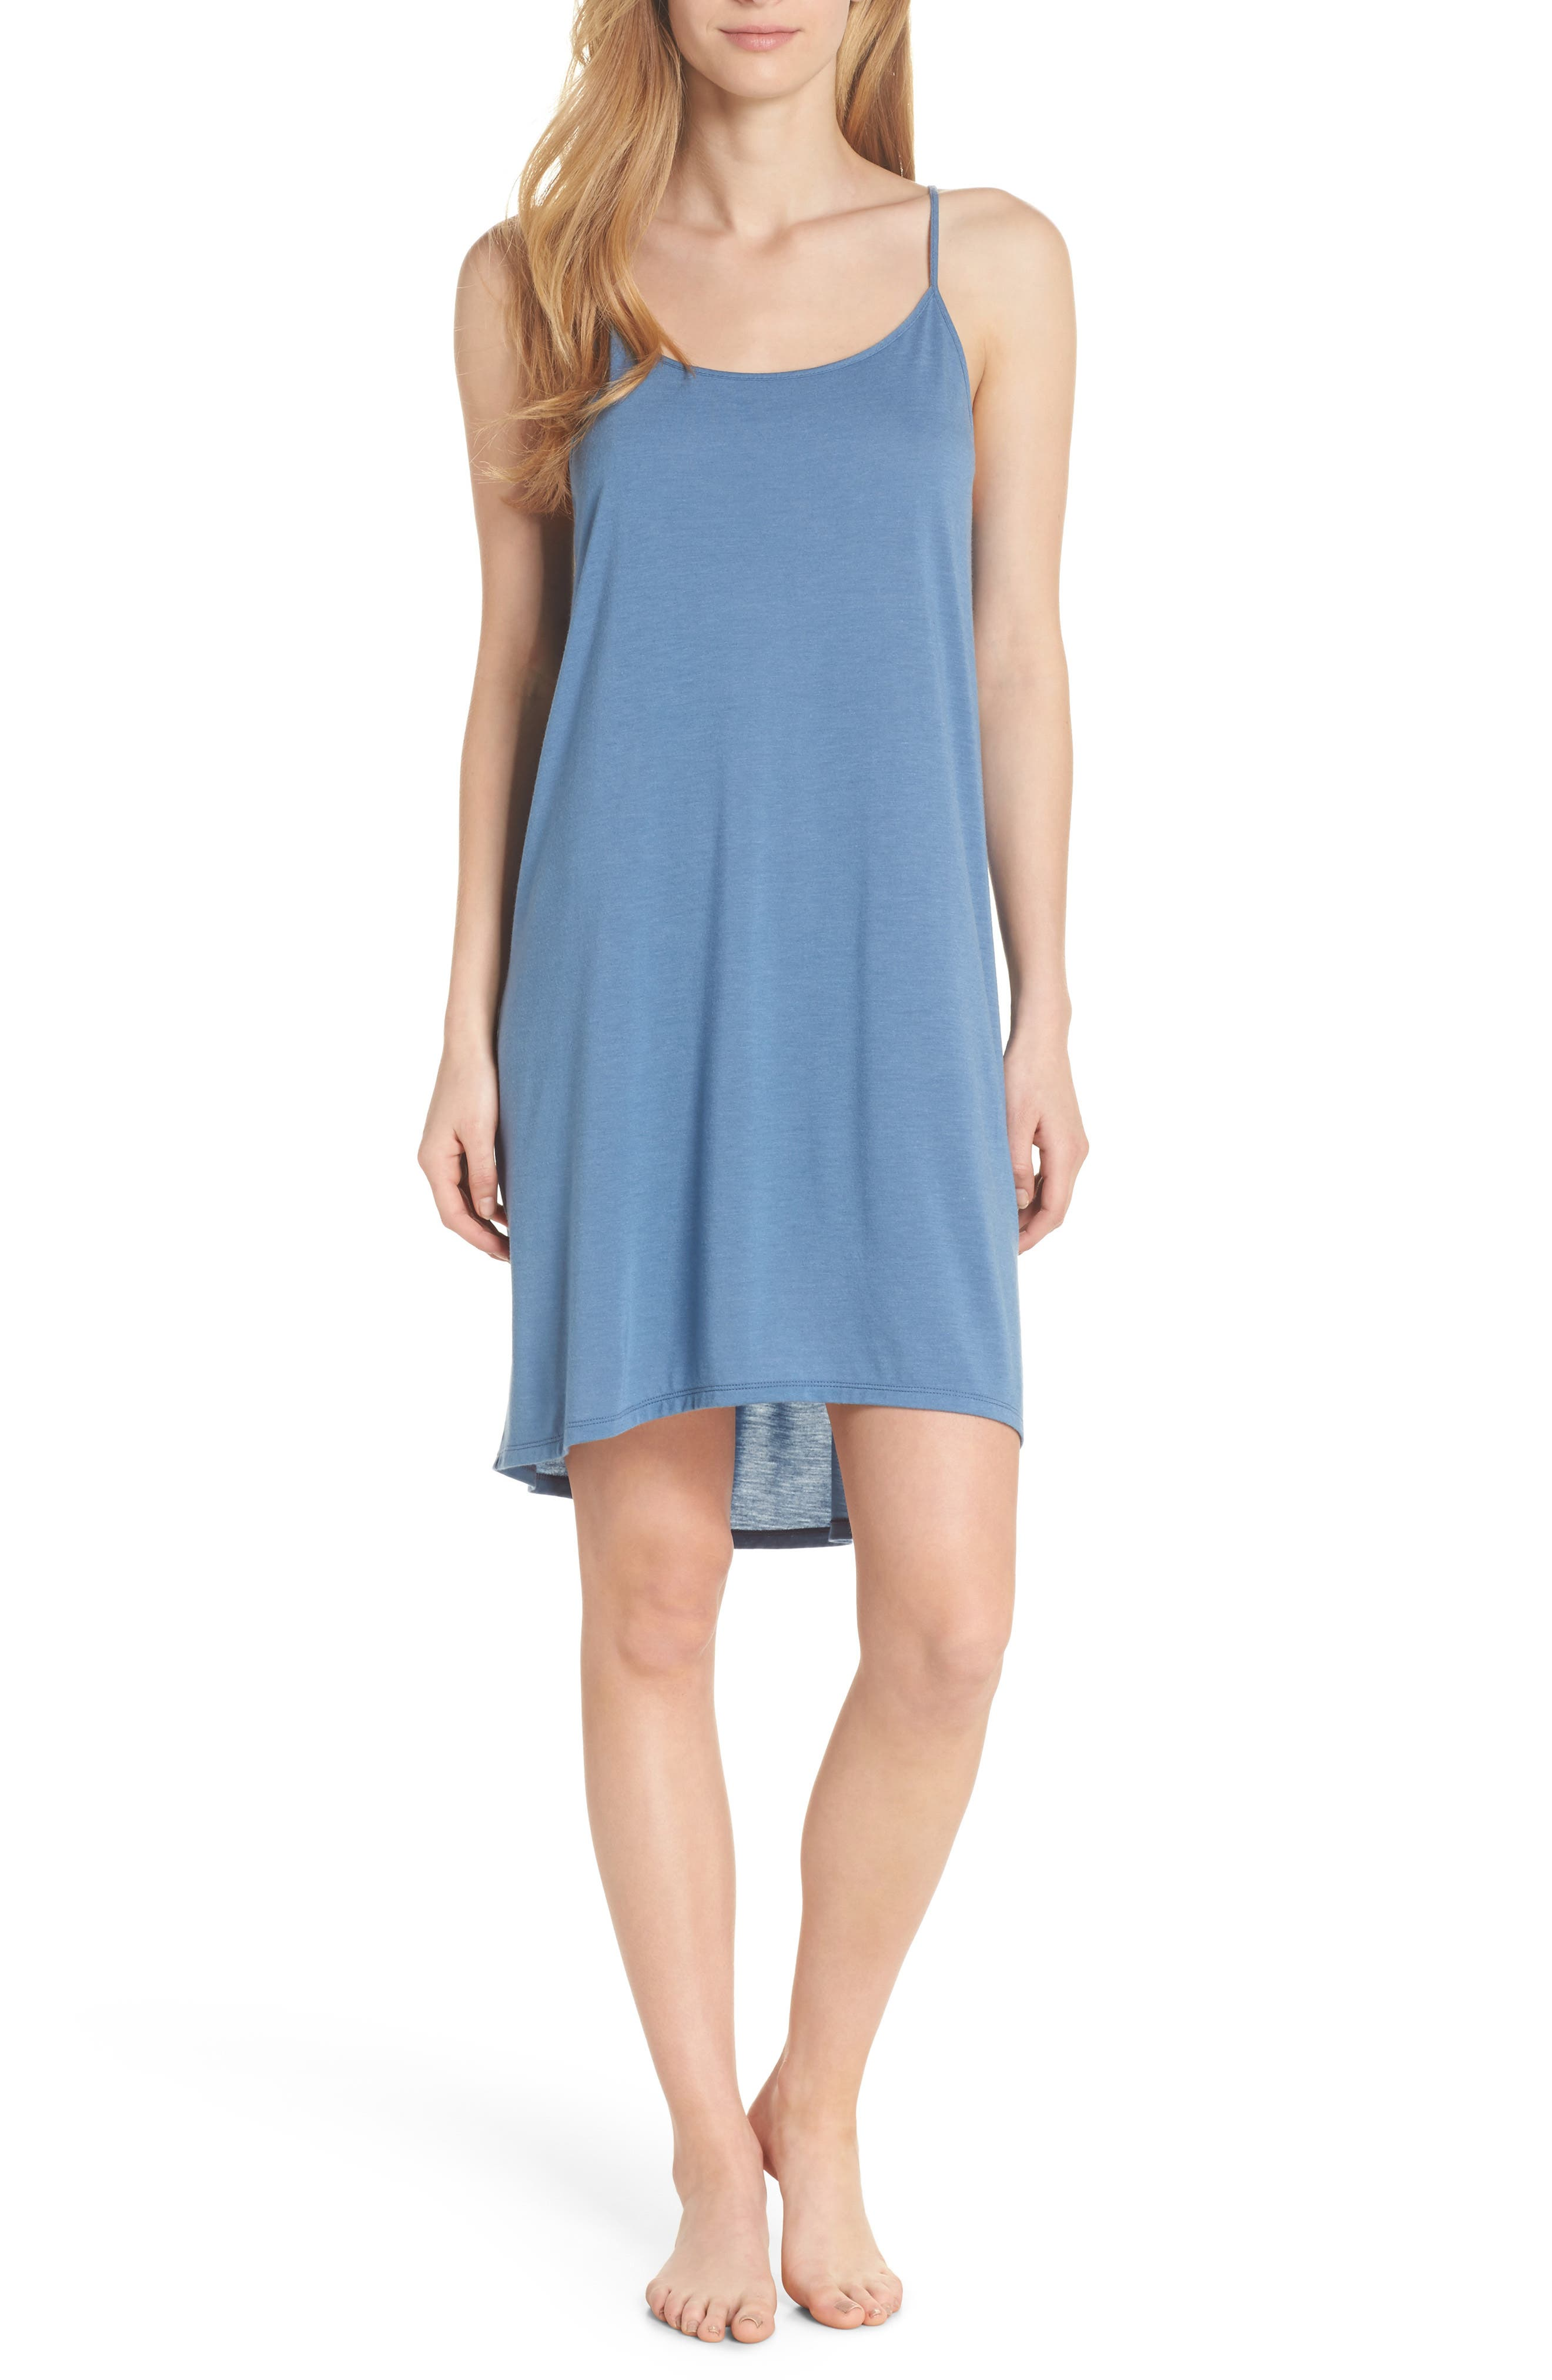 Heather Tees Chemise,                             Main thumbnail 1, color,                             Bsq Ht Blue Shadow